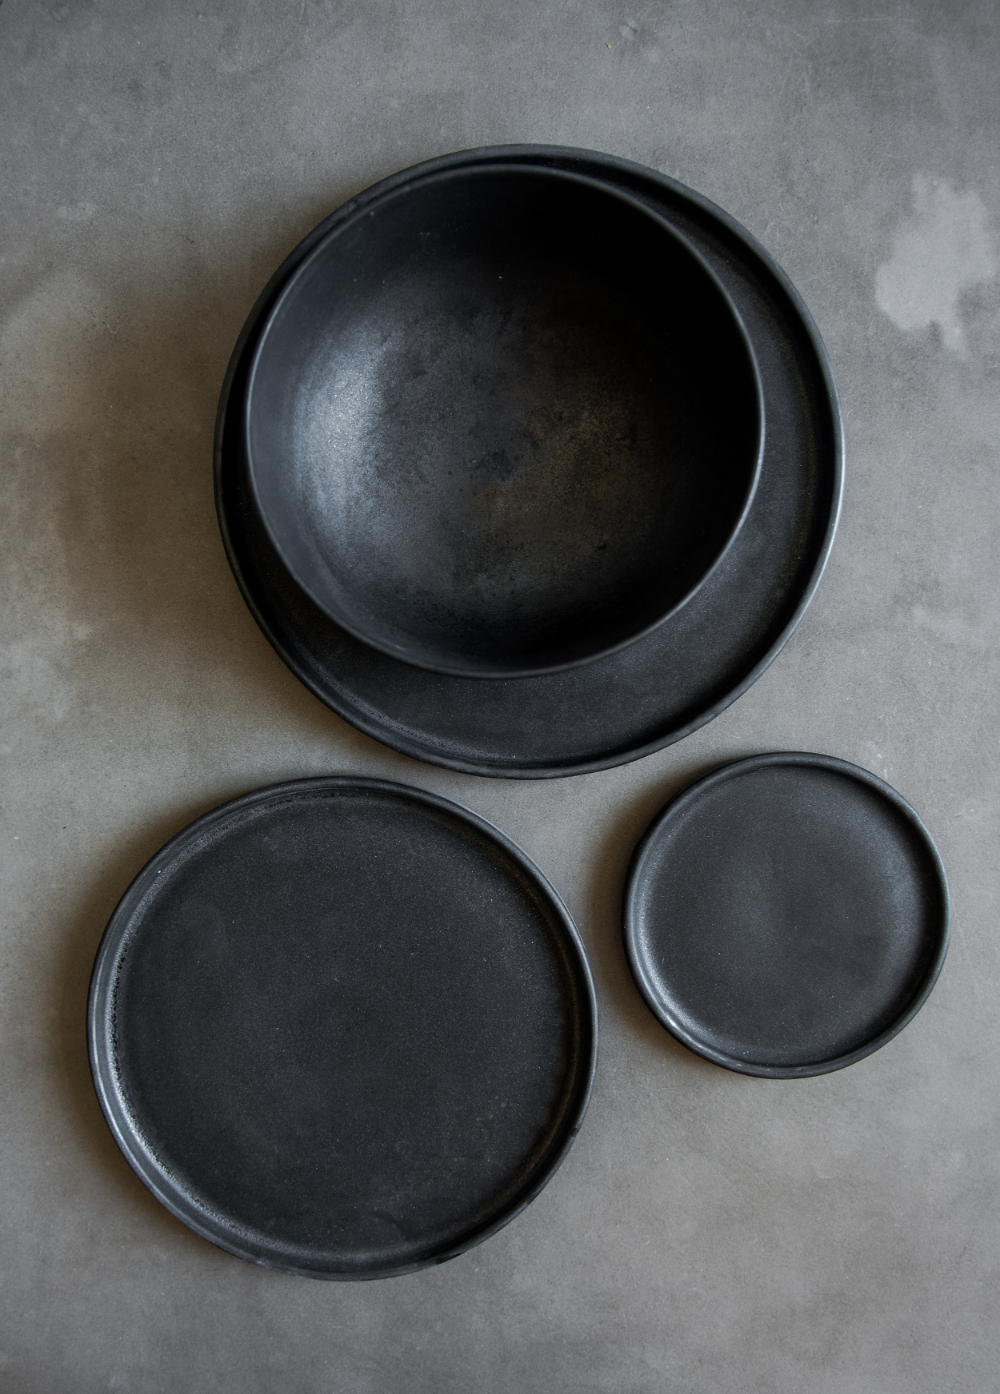 Plates- Older set of bowls and plates, cool medieval aesthetic.